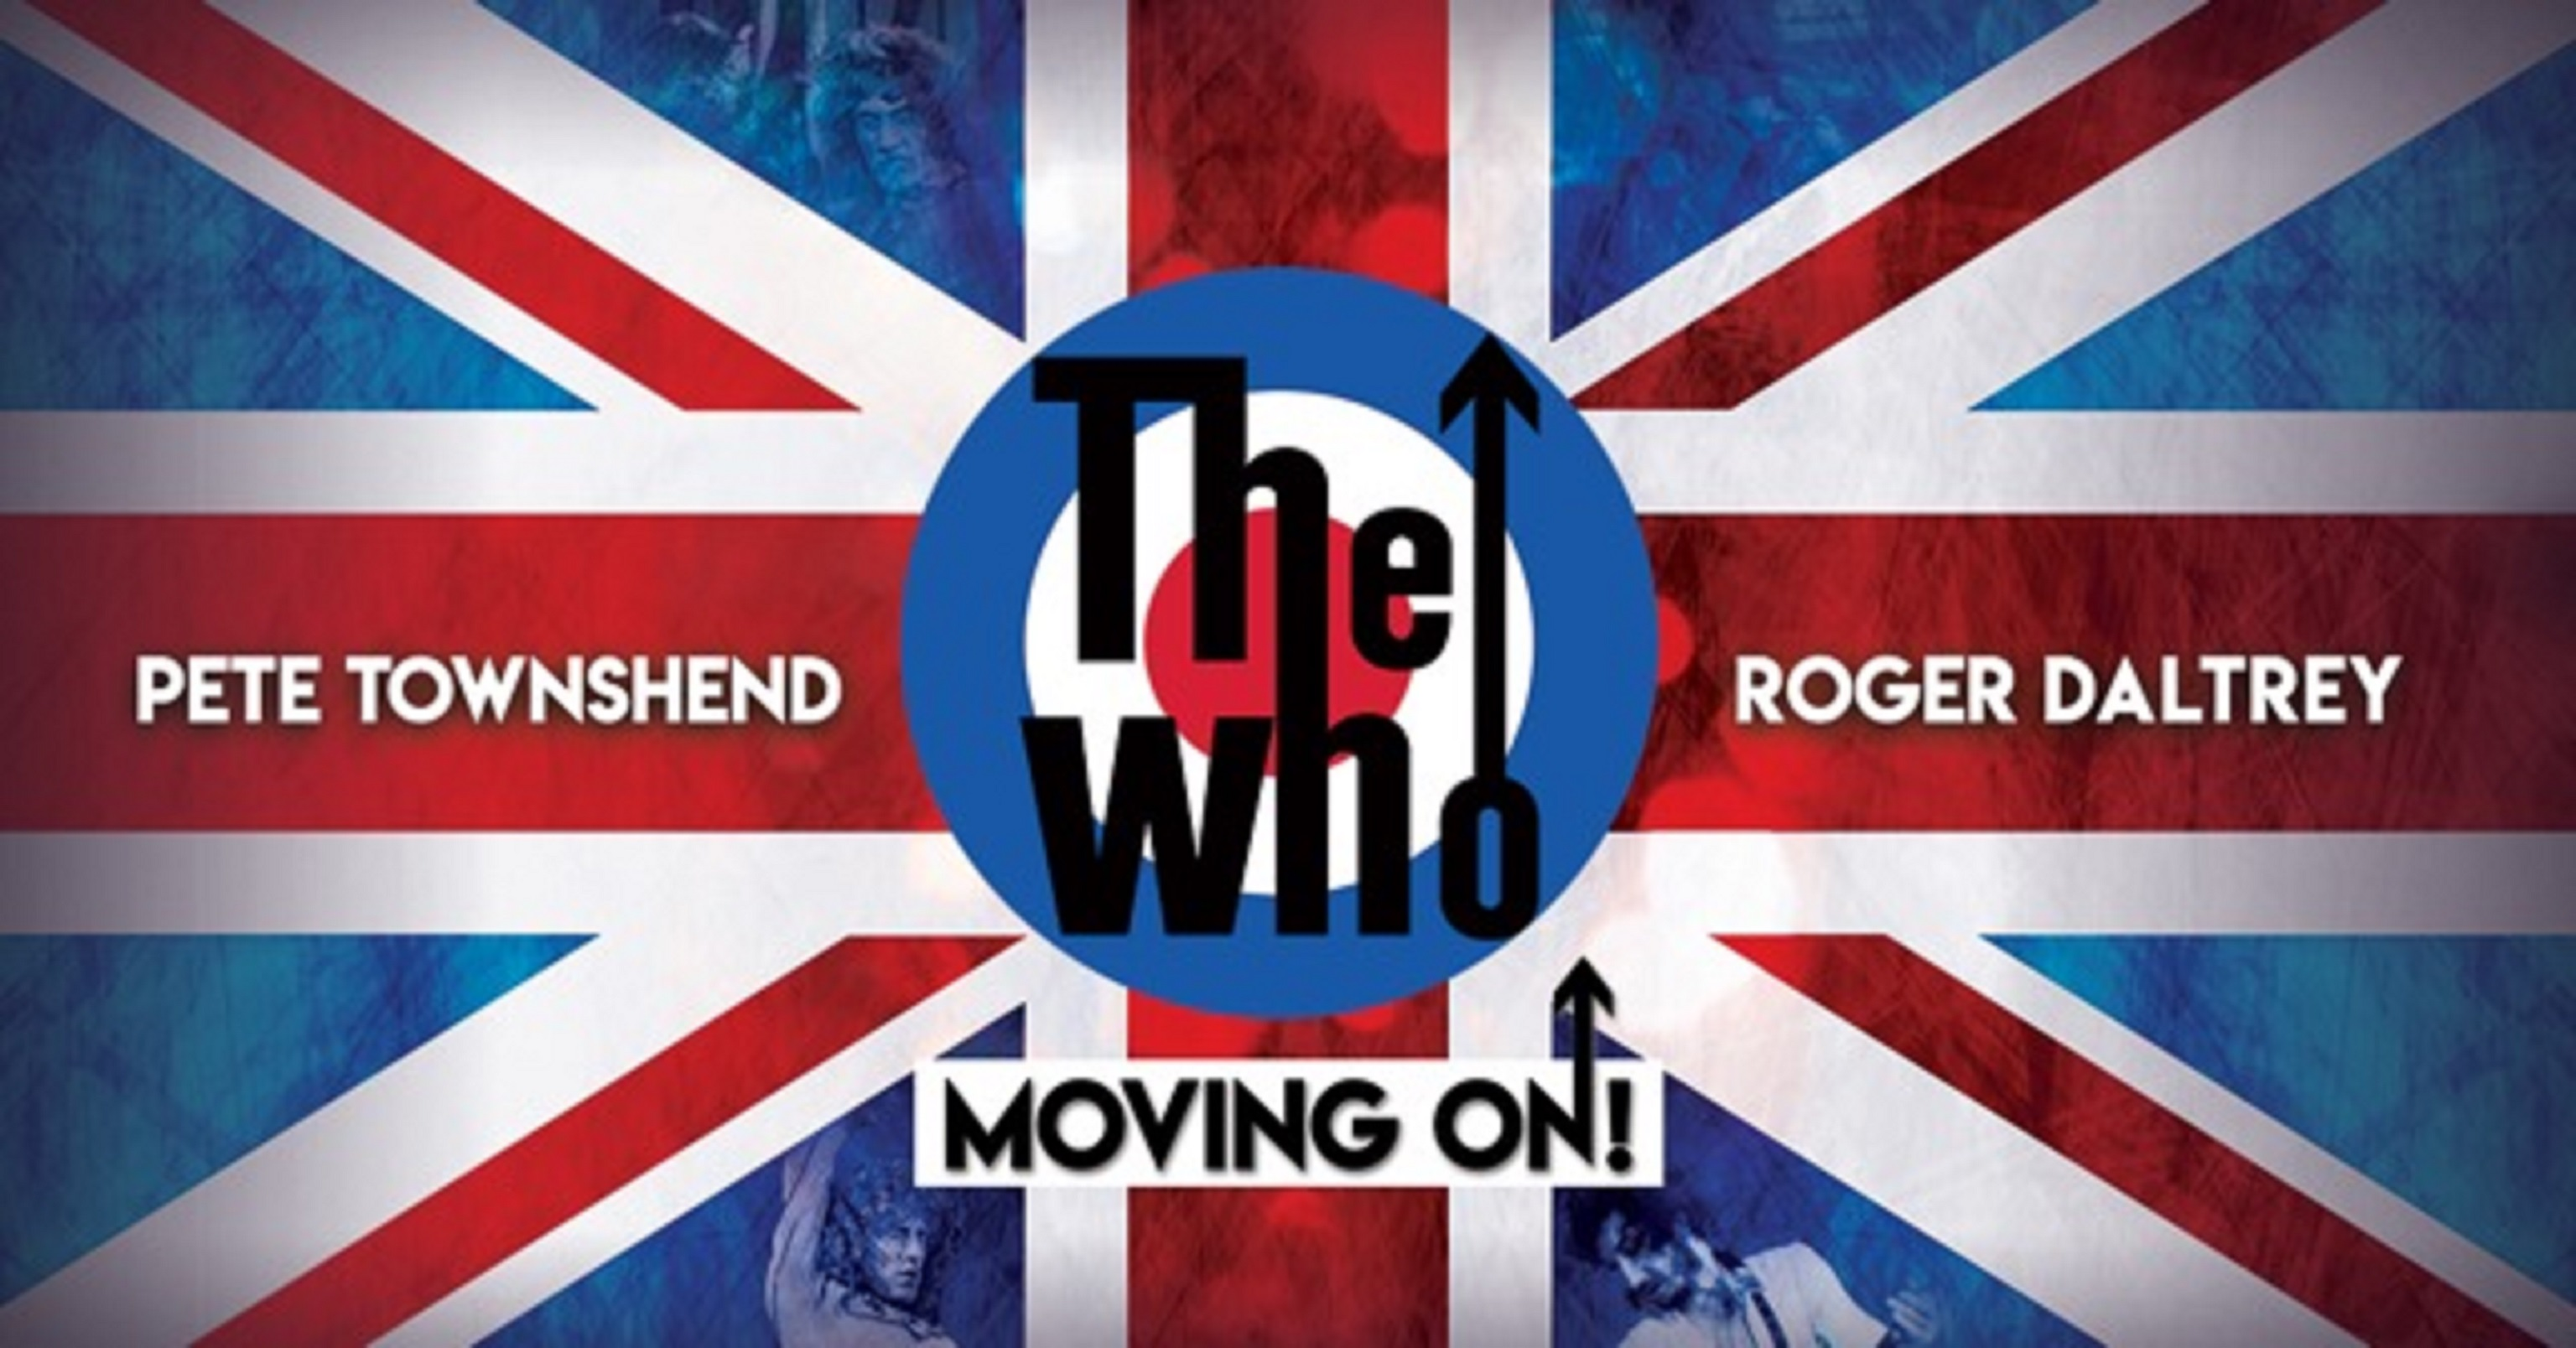 The Who Announces Special Guests for Moving On! Tour